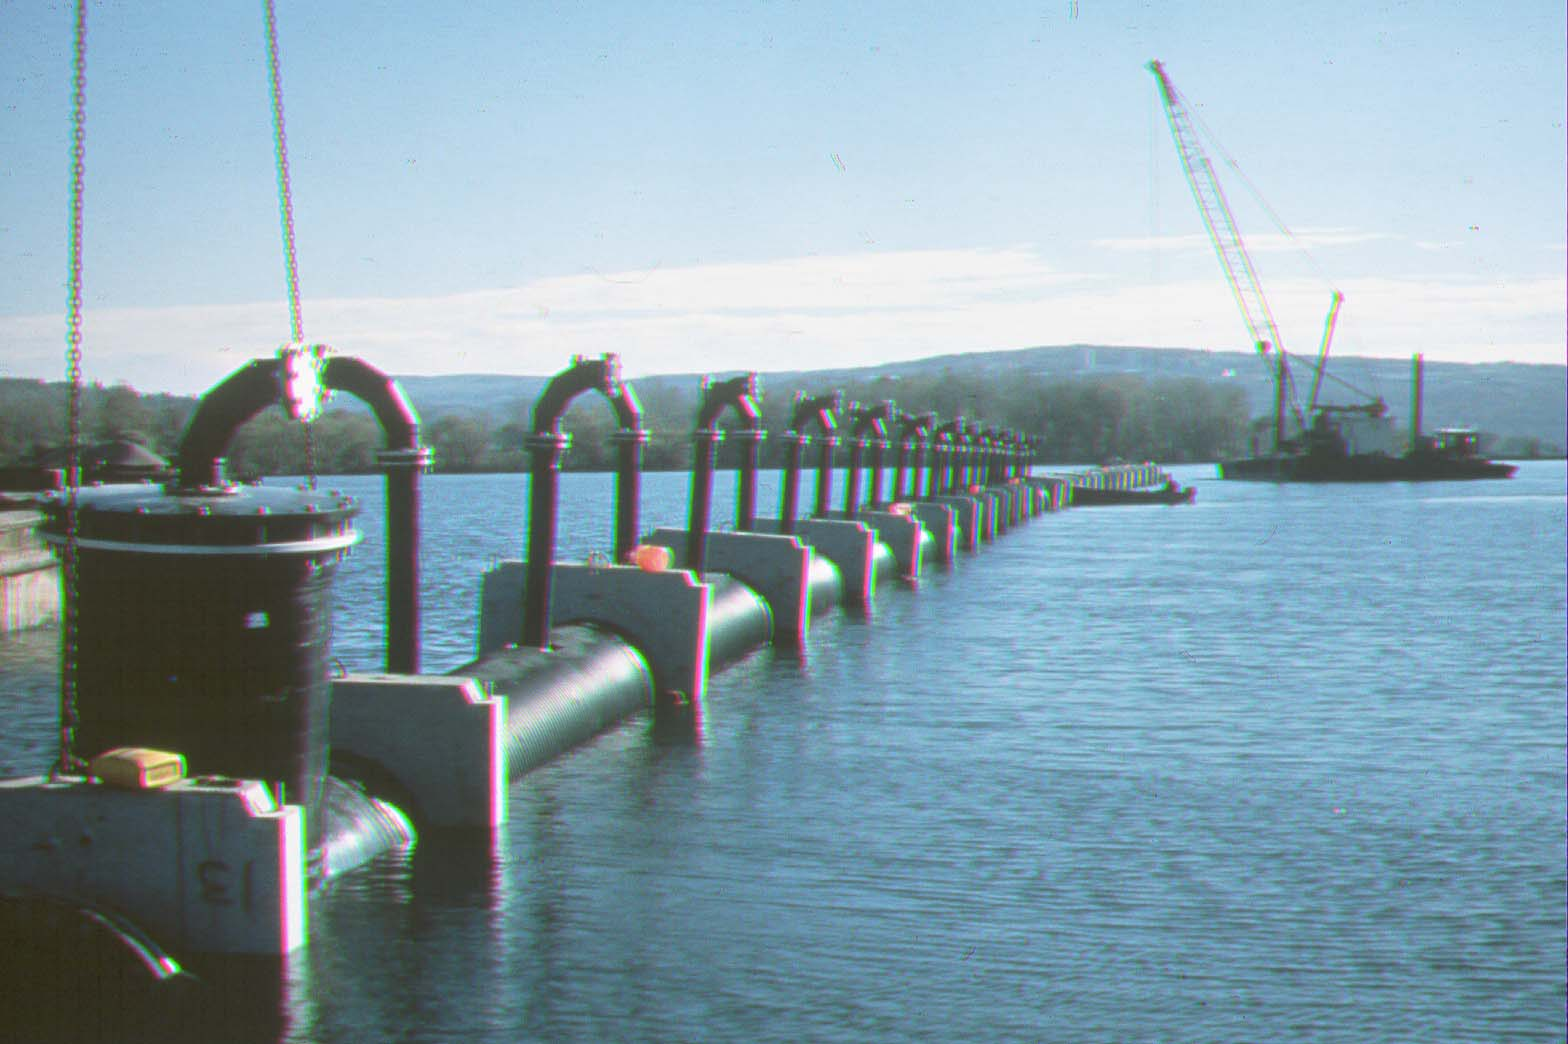 Multiport diffuser under construction on Lake Cayuga, New York.